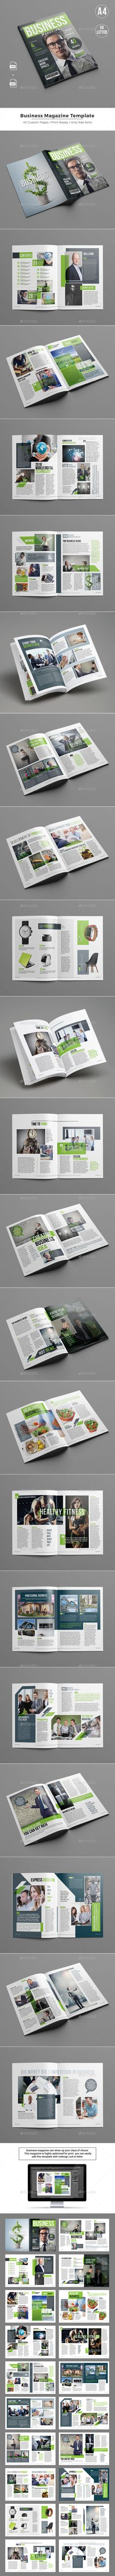 Business Magazine Template - Magazines Print Templates Download here : https://graphicriver.net/item/business-magazine-template/19479725?s_rank=70&ref=Al-fatih